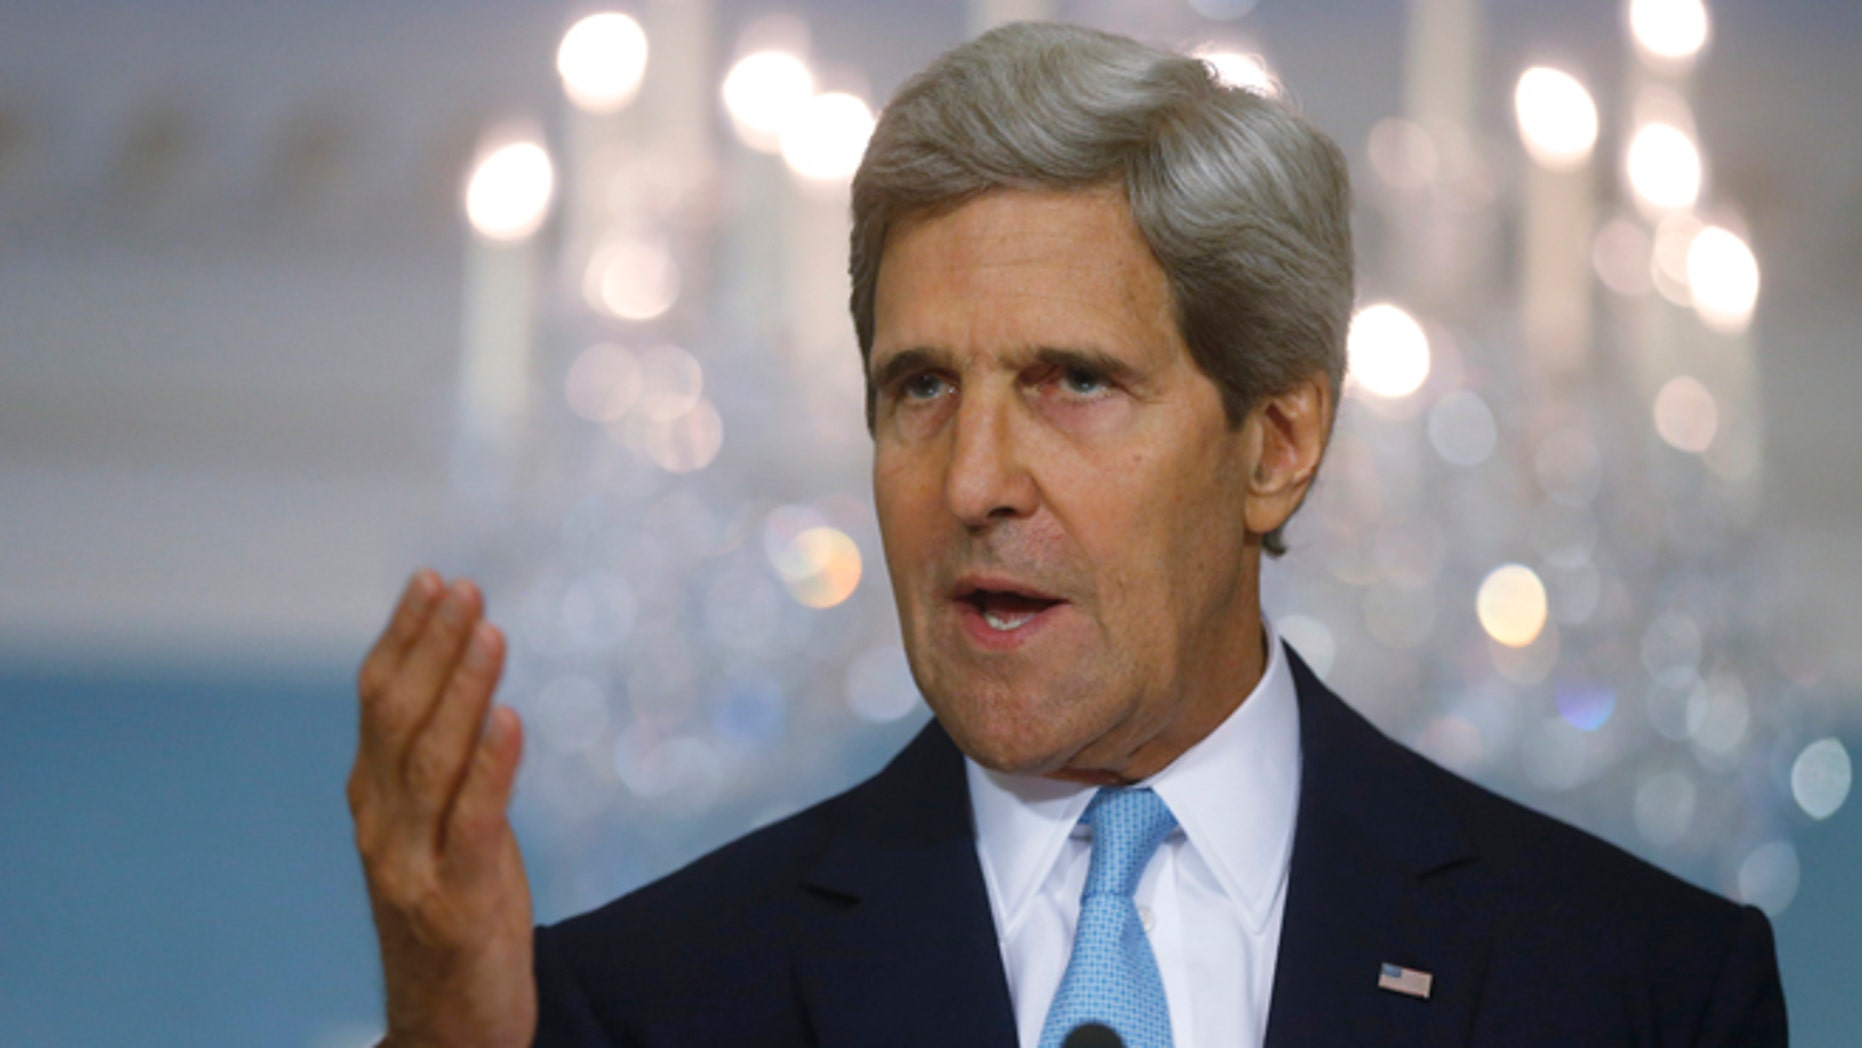 FILE: Aug. 30, 2013.Secretary of State John Kerry makes a statement about Syria at the State Department in Washington, D.C.